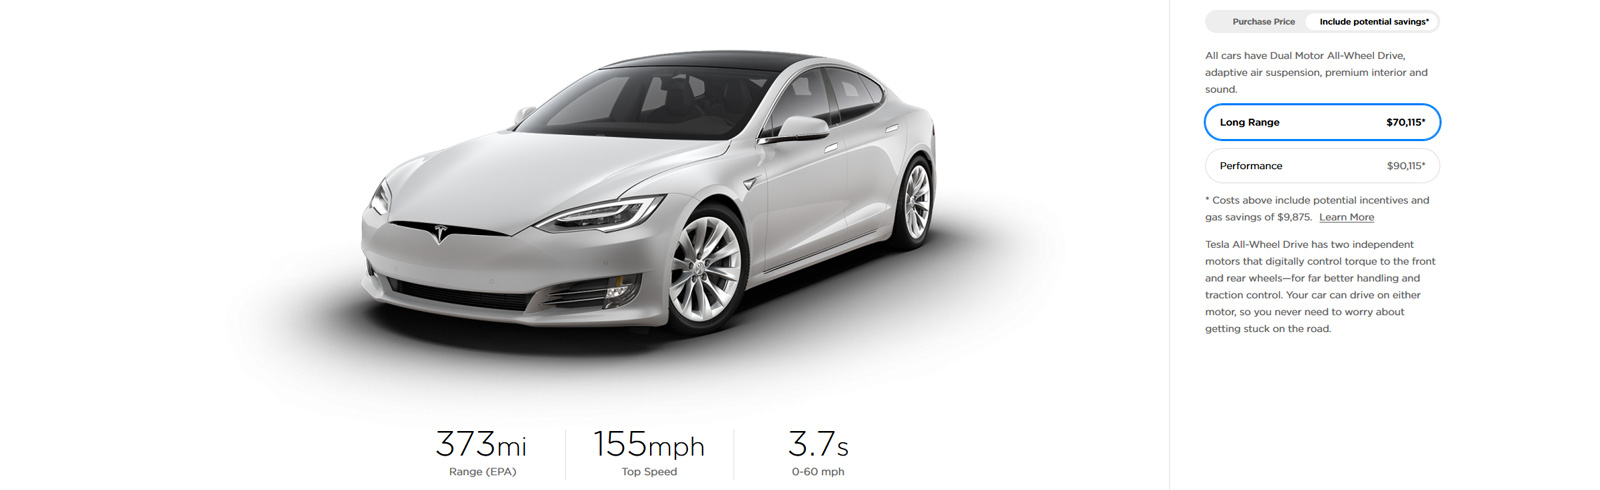 Tesla Model S and Model X range increased by 3 miles